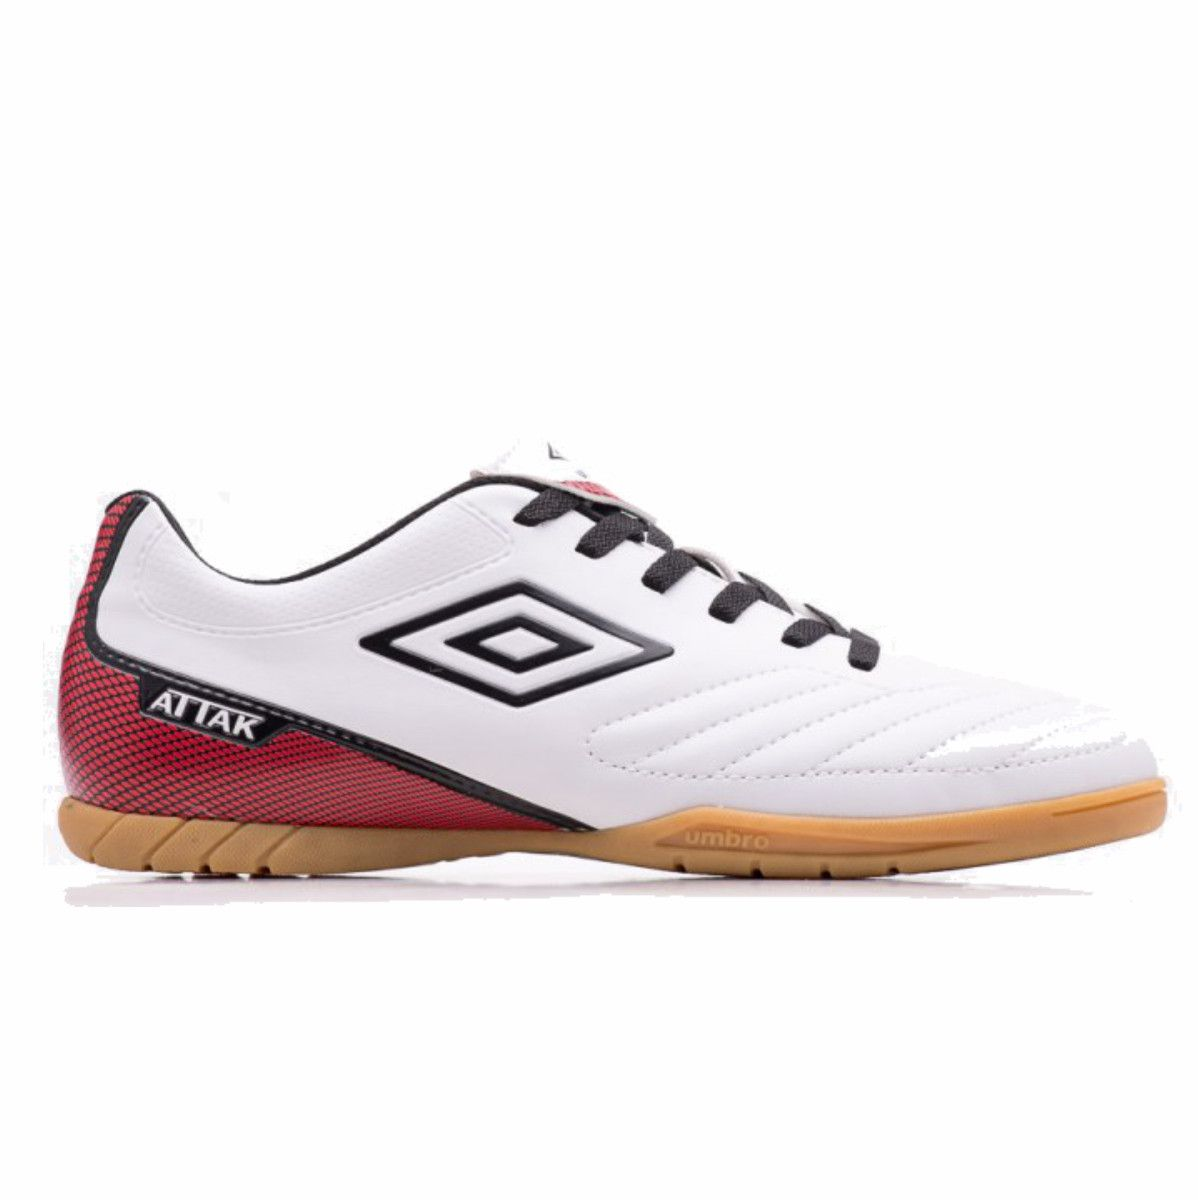 Tenis Indoor Umbro Attak II Futsal Branco